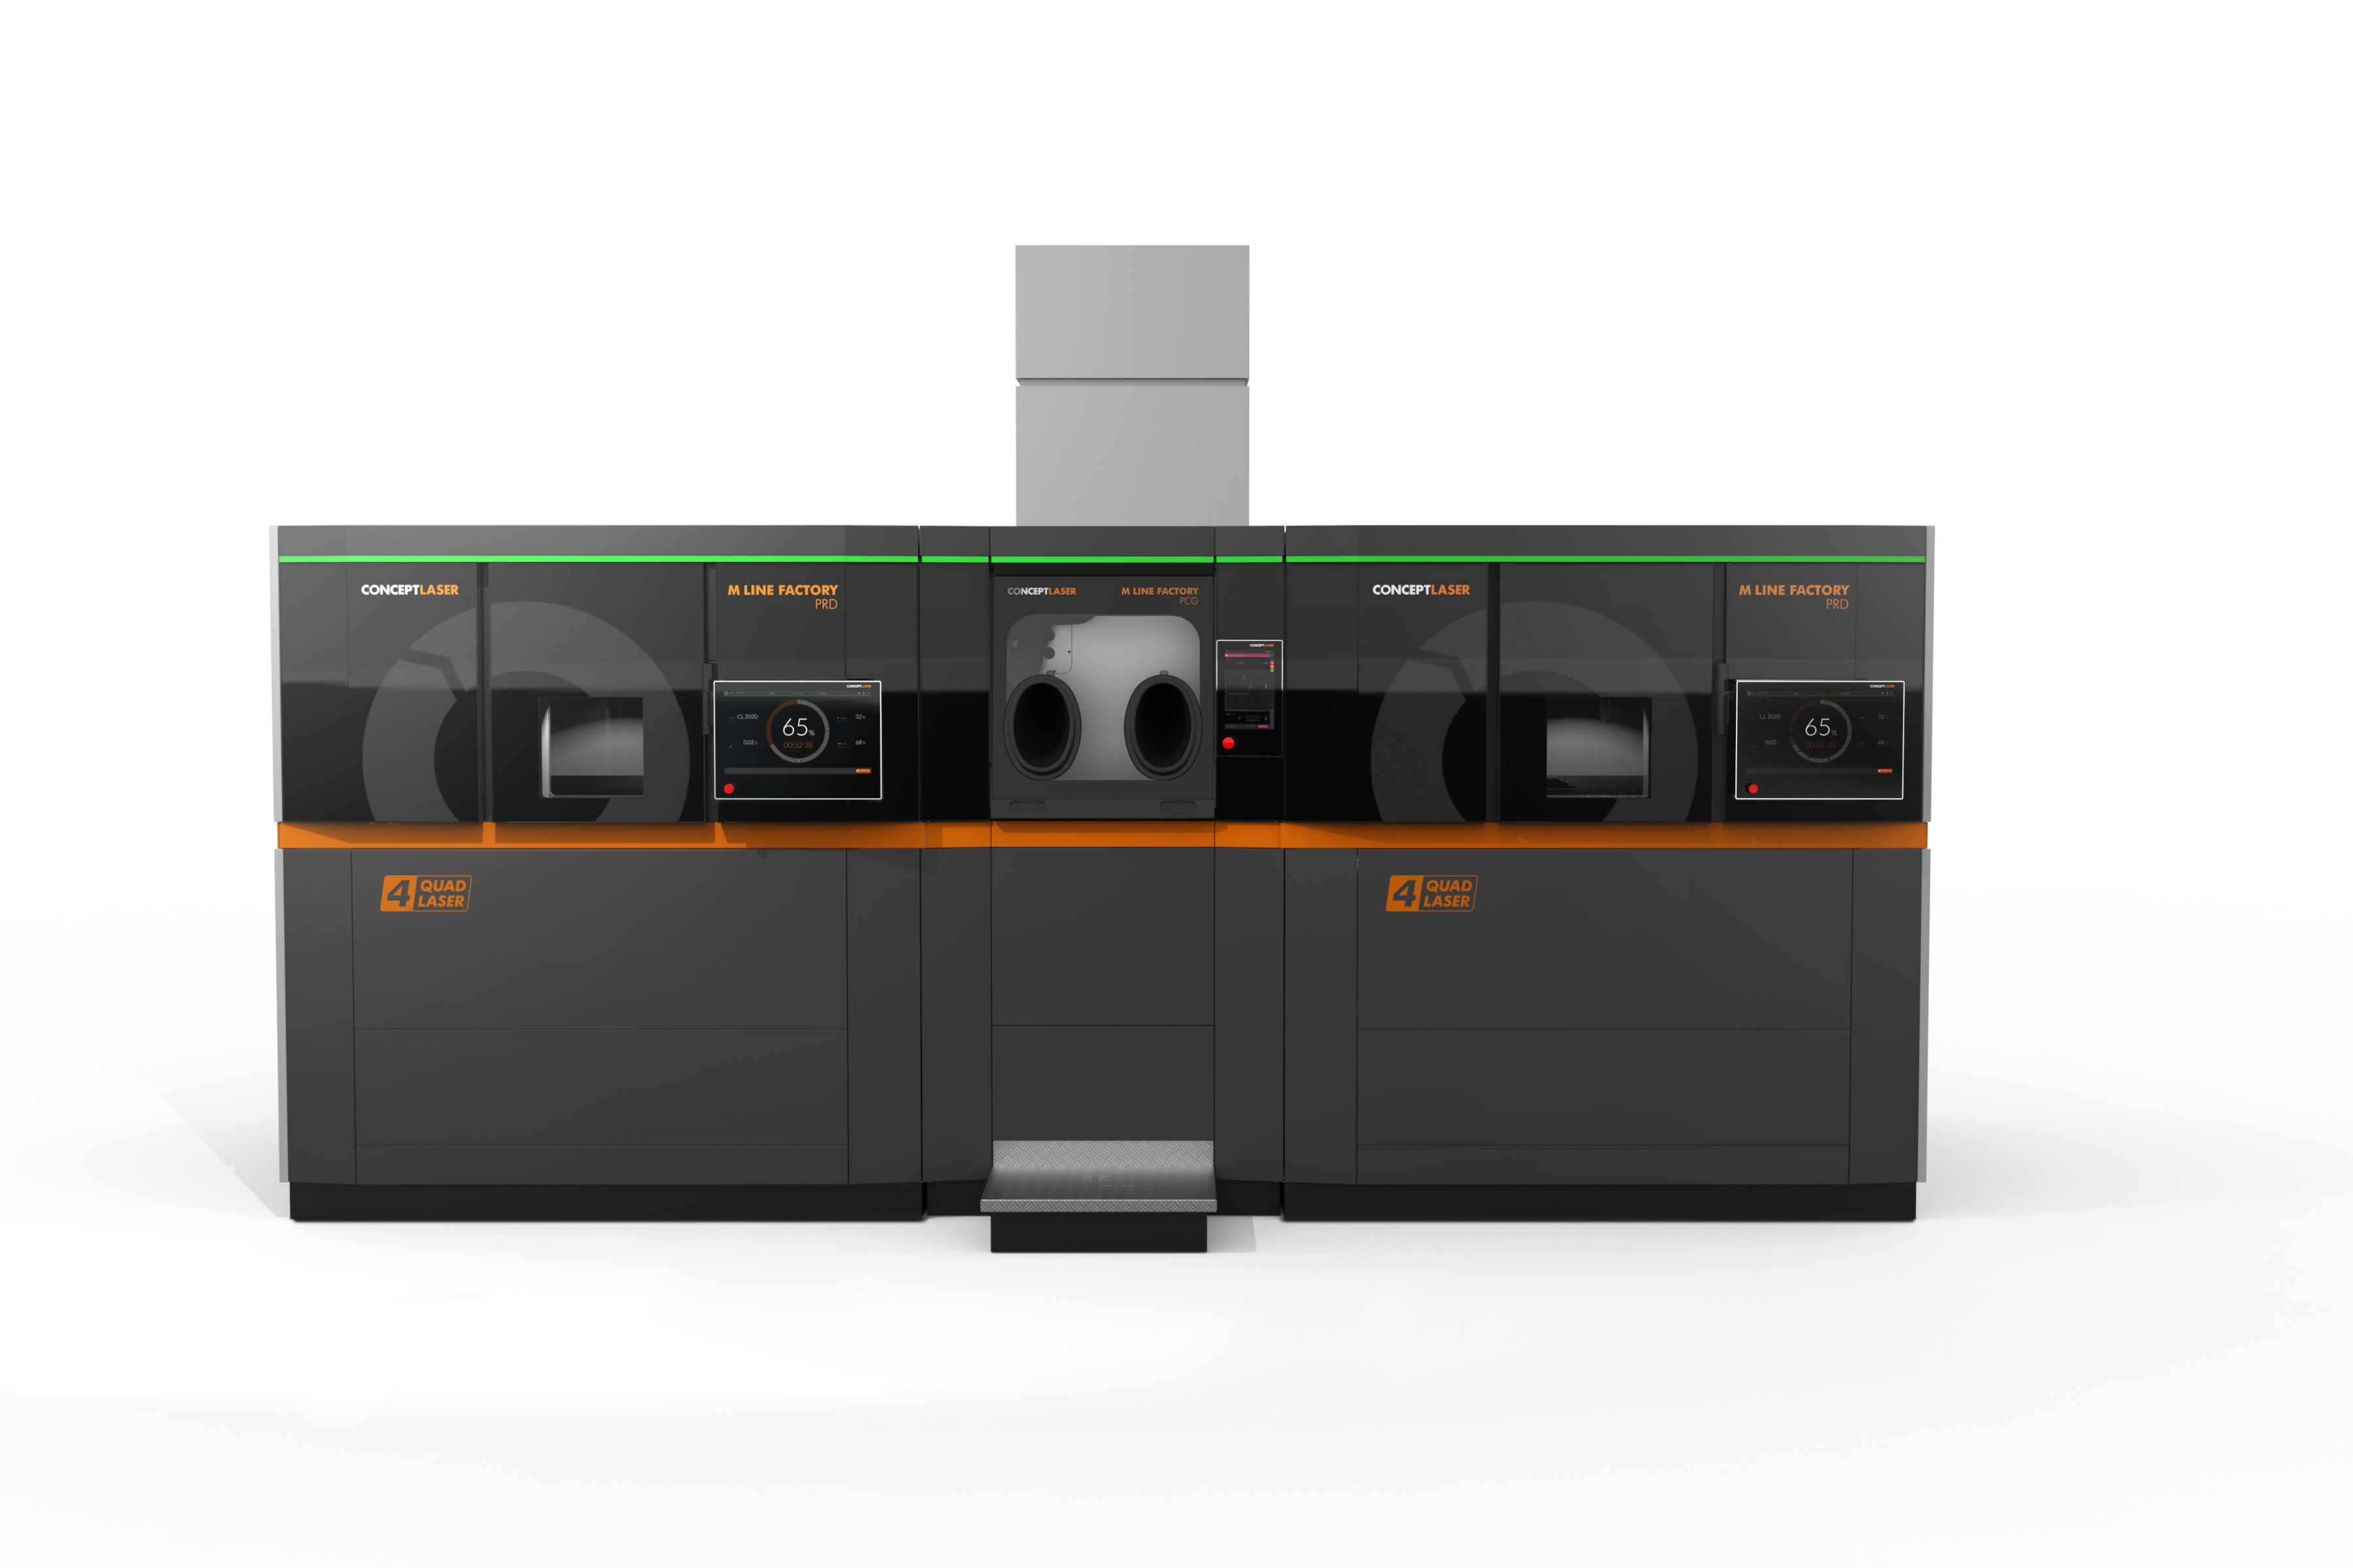 The production unit and processing unit can be combined in any way you want. Here is an example of a processing unit with two production units. Image: Concept Laser